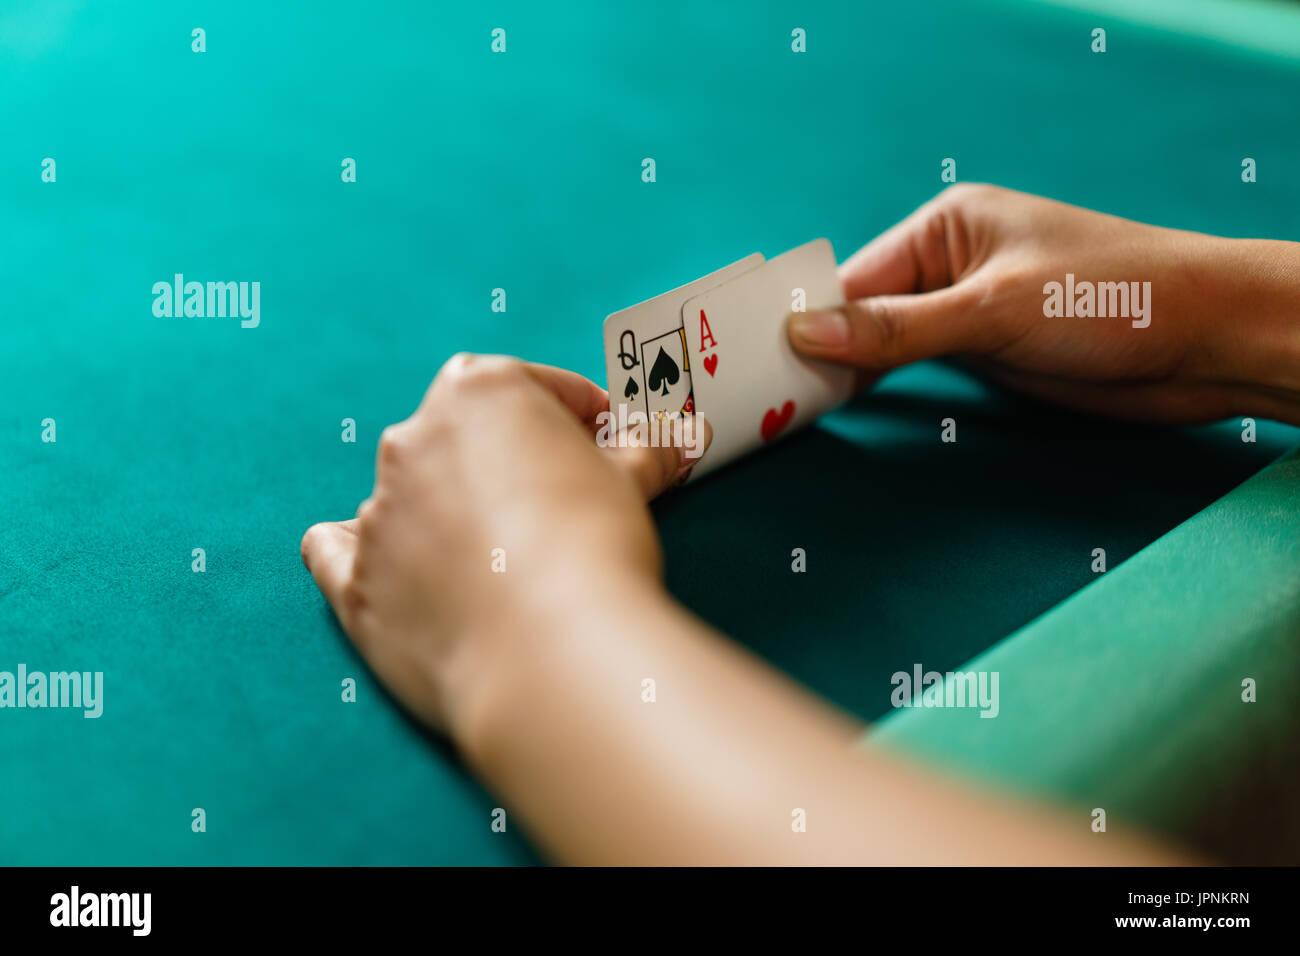 Player peeking cards in Blackjack game - Stock Image